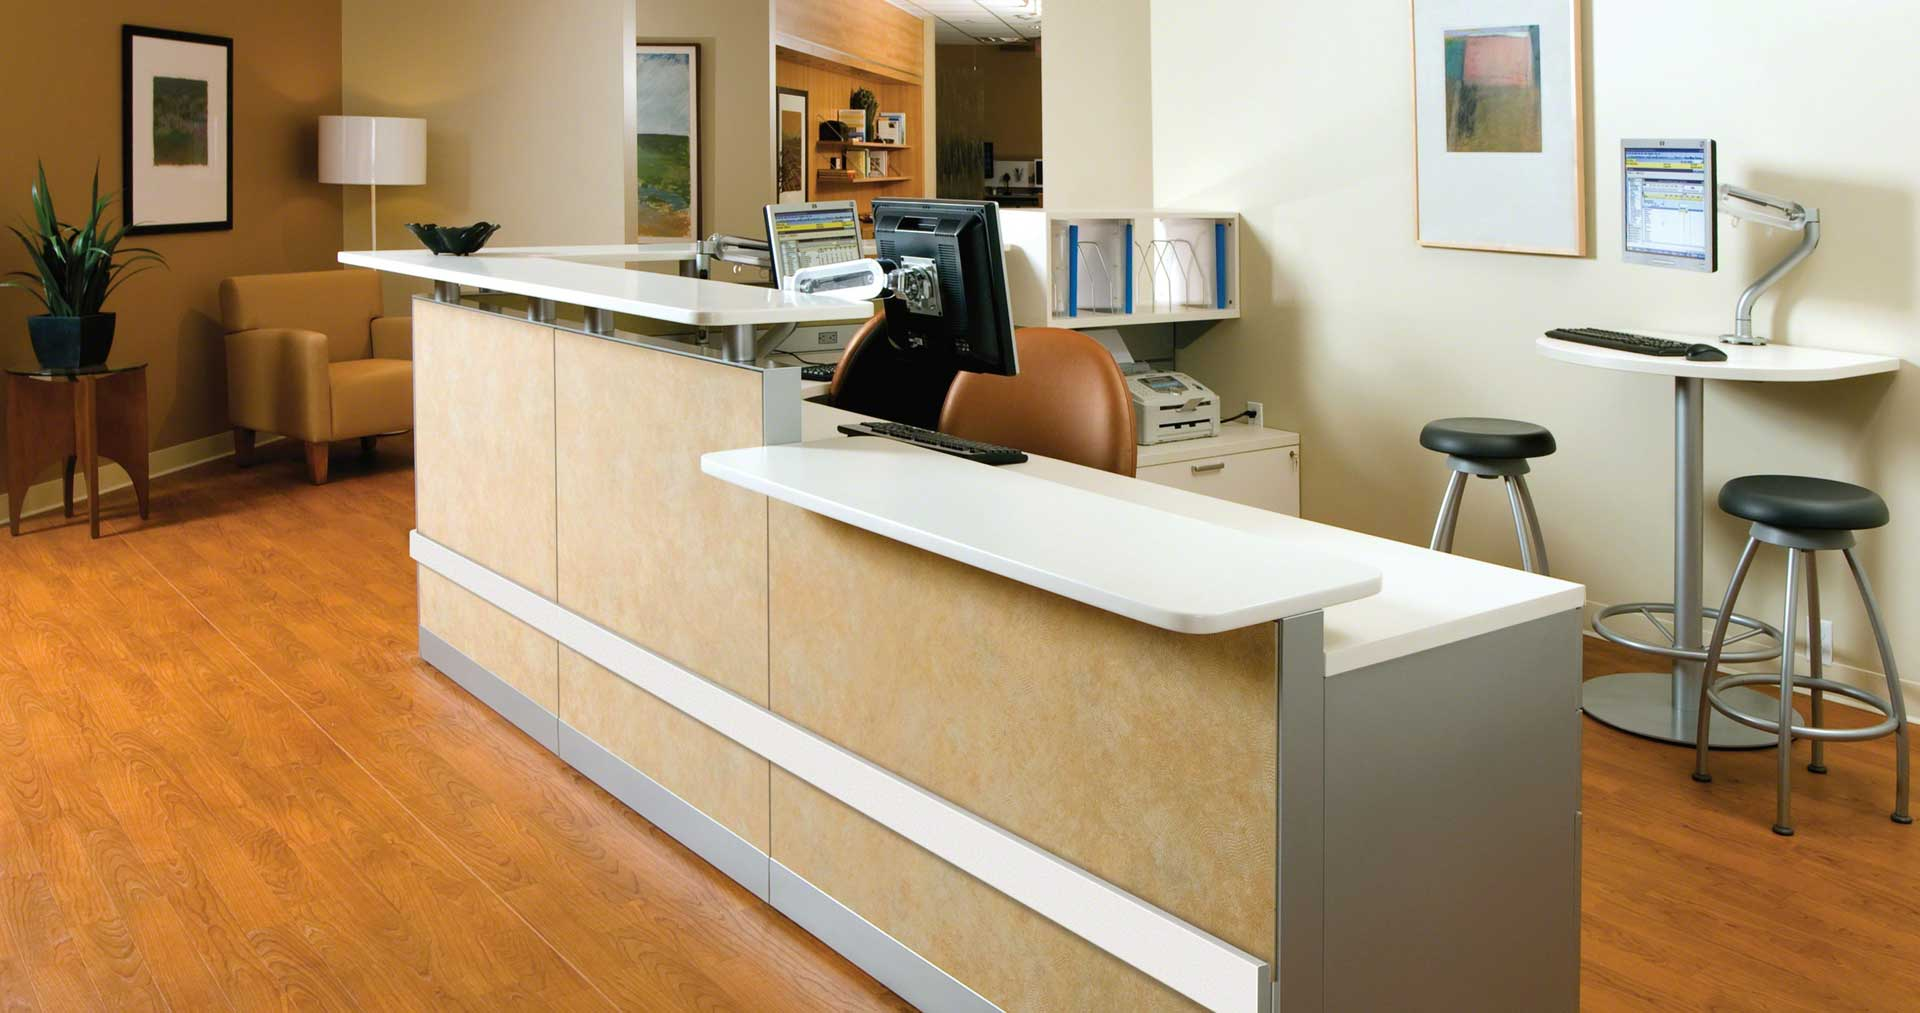 Montage-Systems-Exchange-Tables-Criterion-Chairs-Verge-Stools-08-0003595.DL17